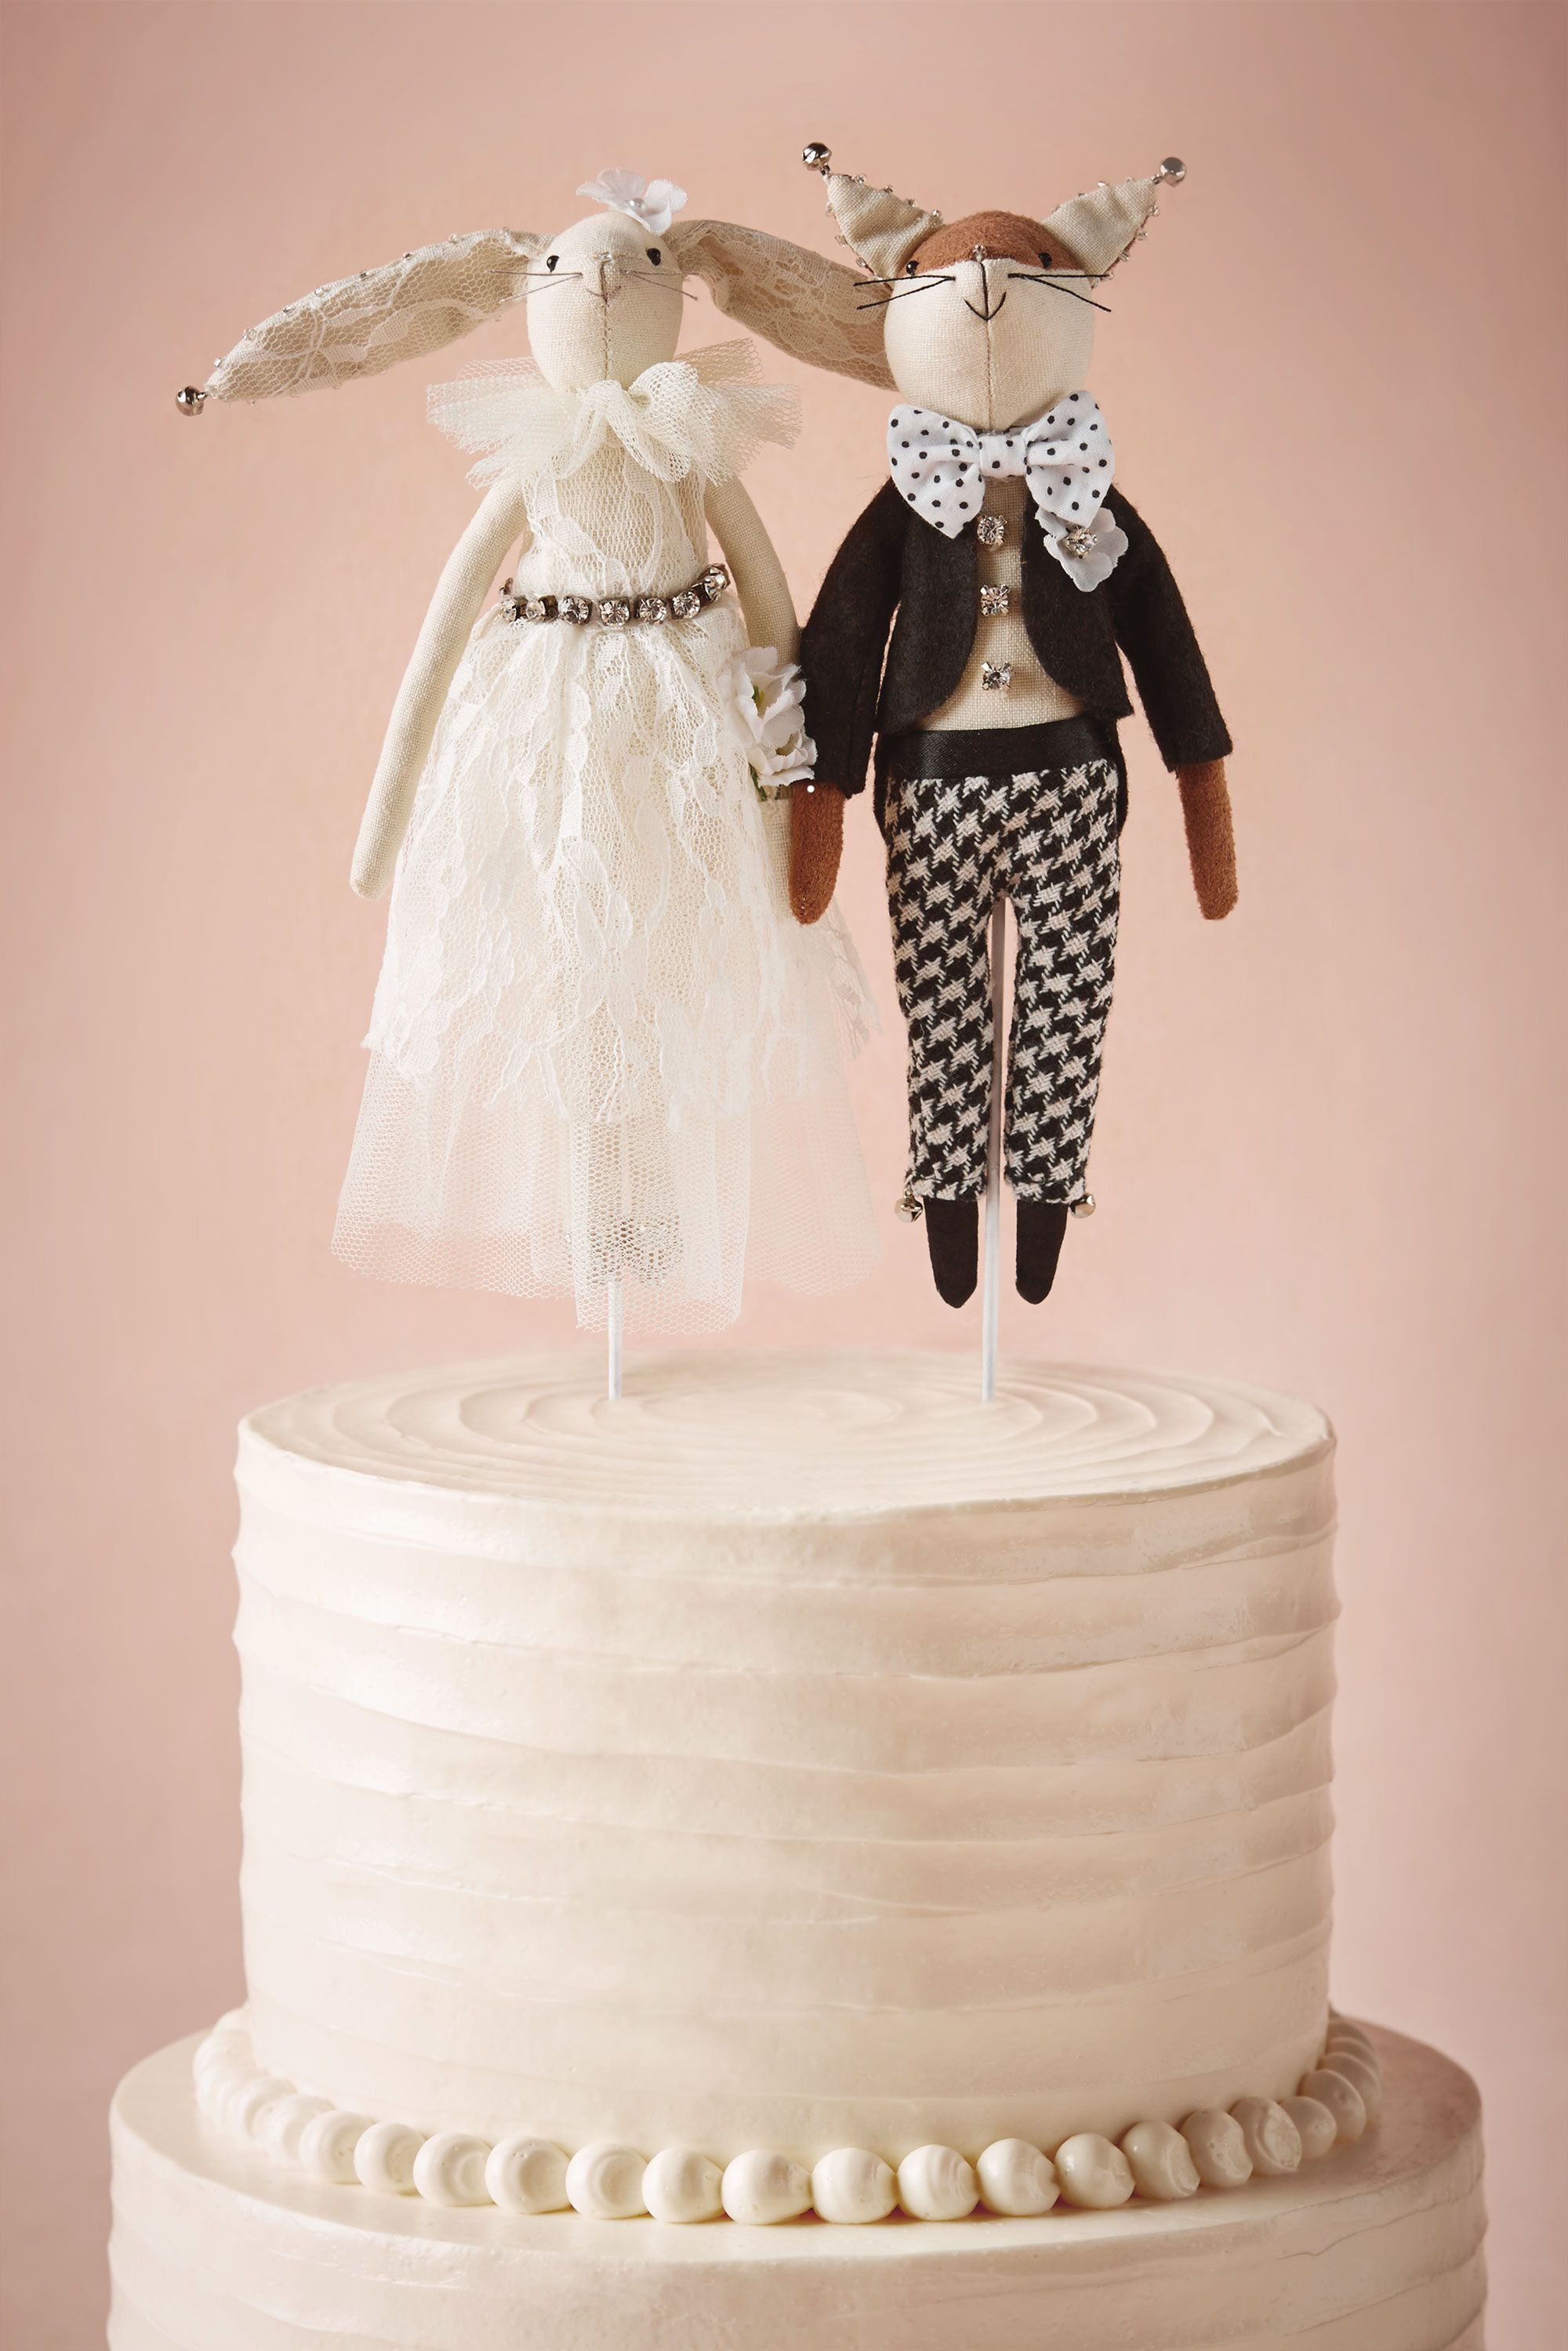 Woodland Creatures Cake Topper in Dcor BHLDN